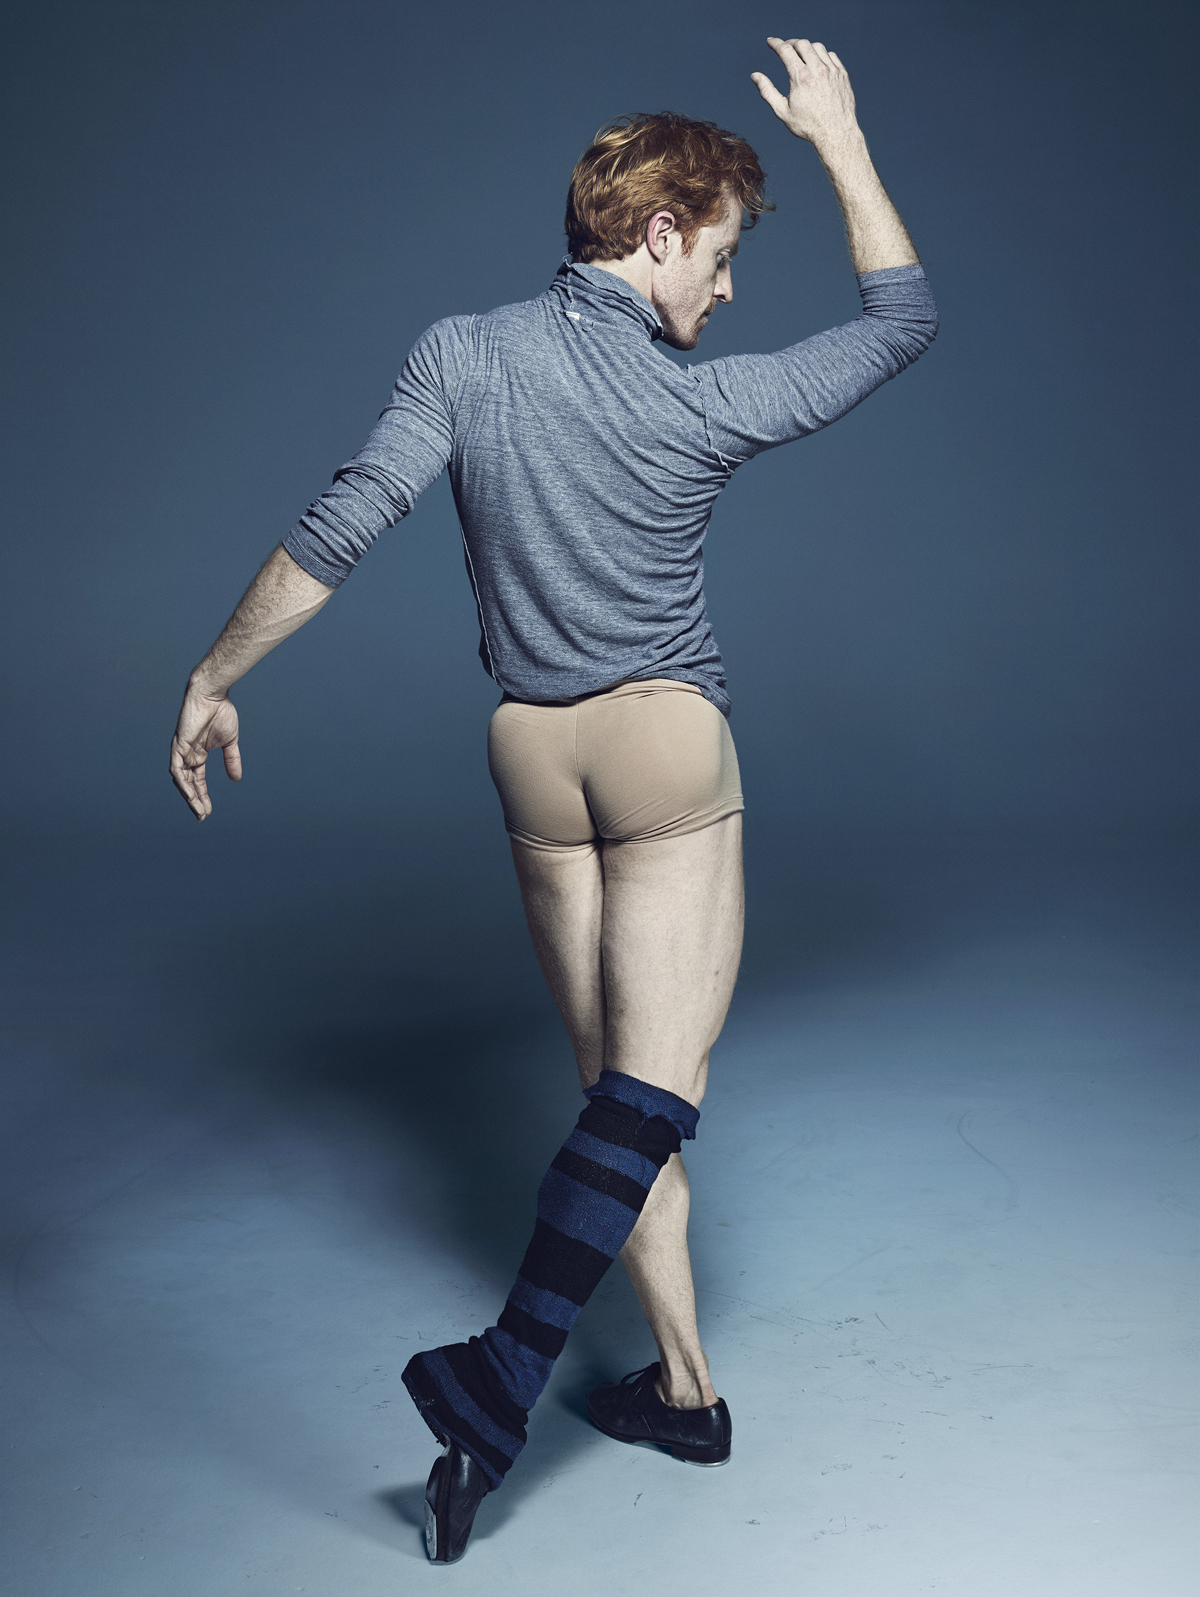 Steven McRae, principal of The Royal Ballet